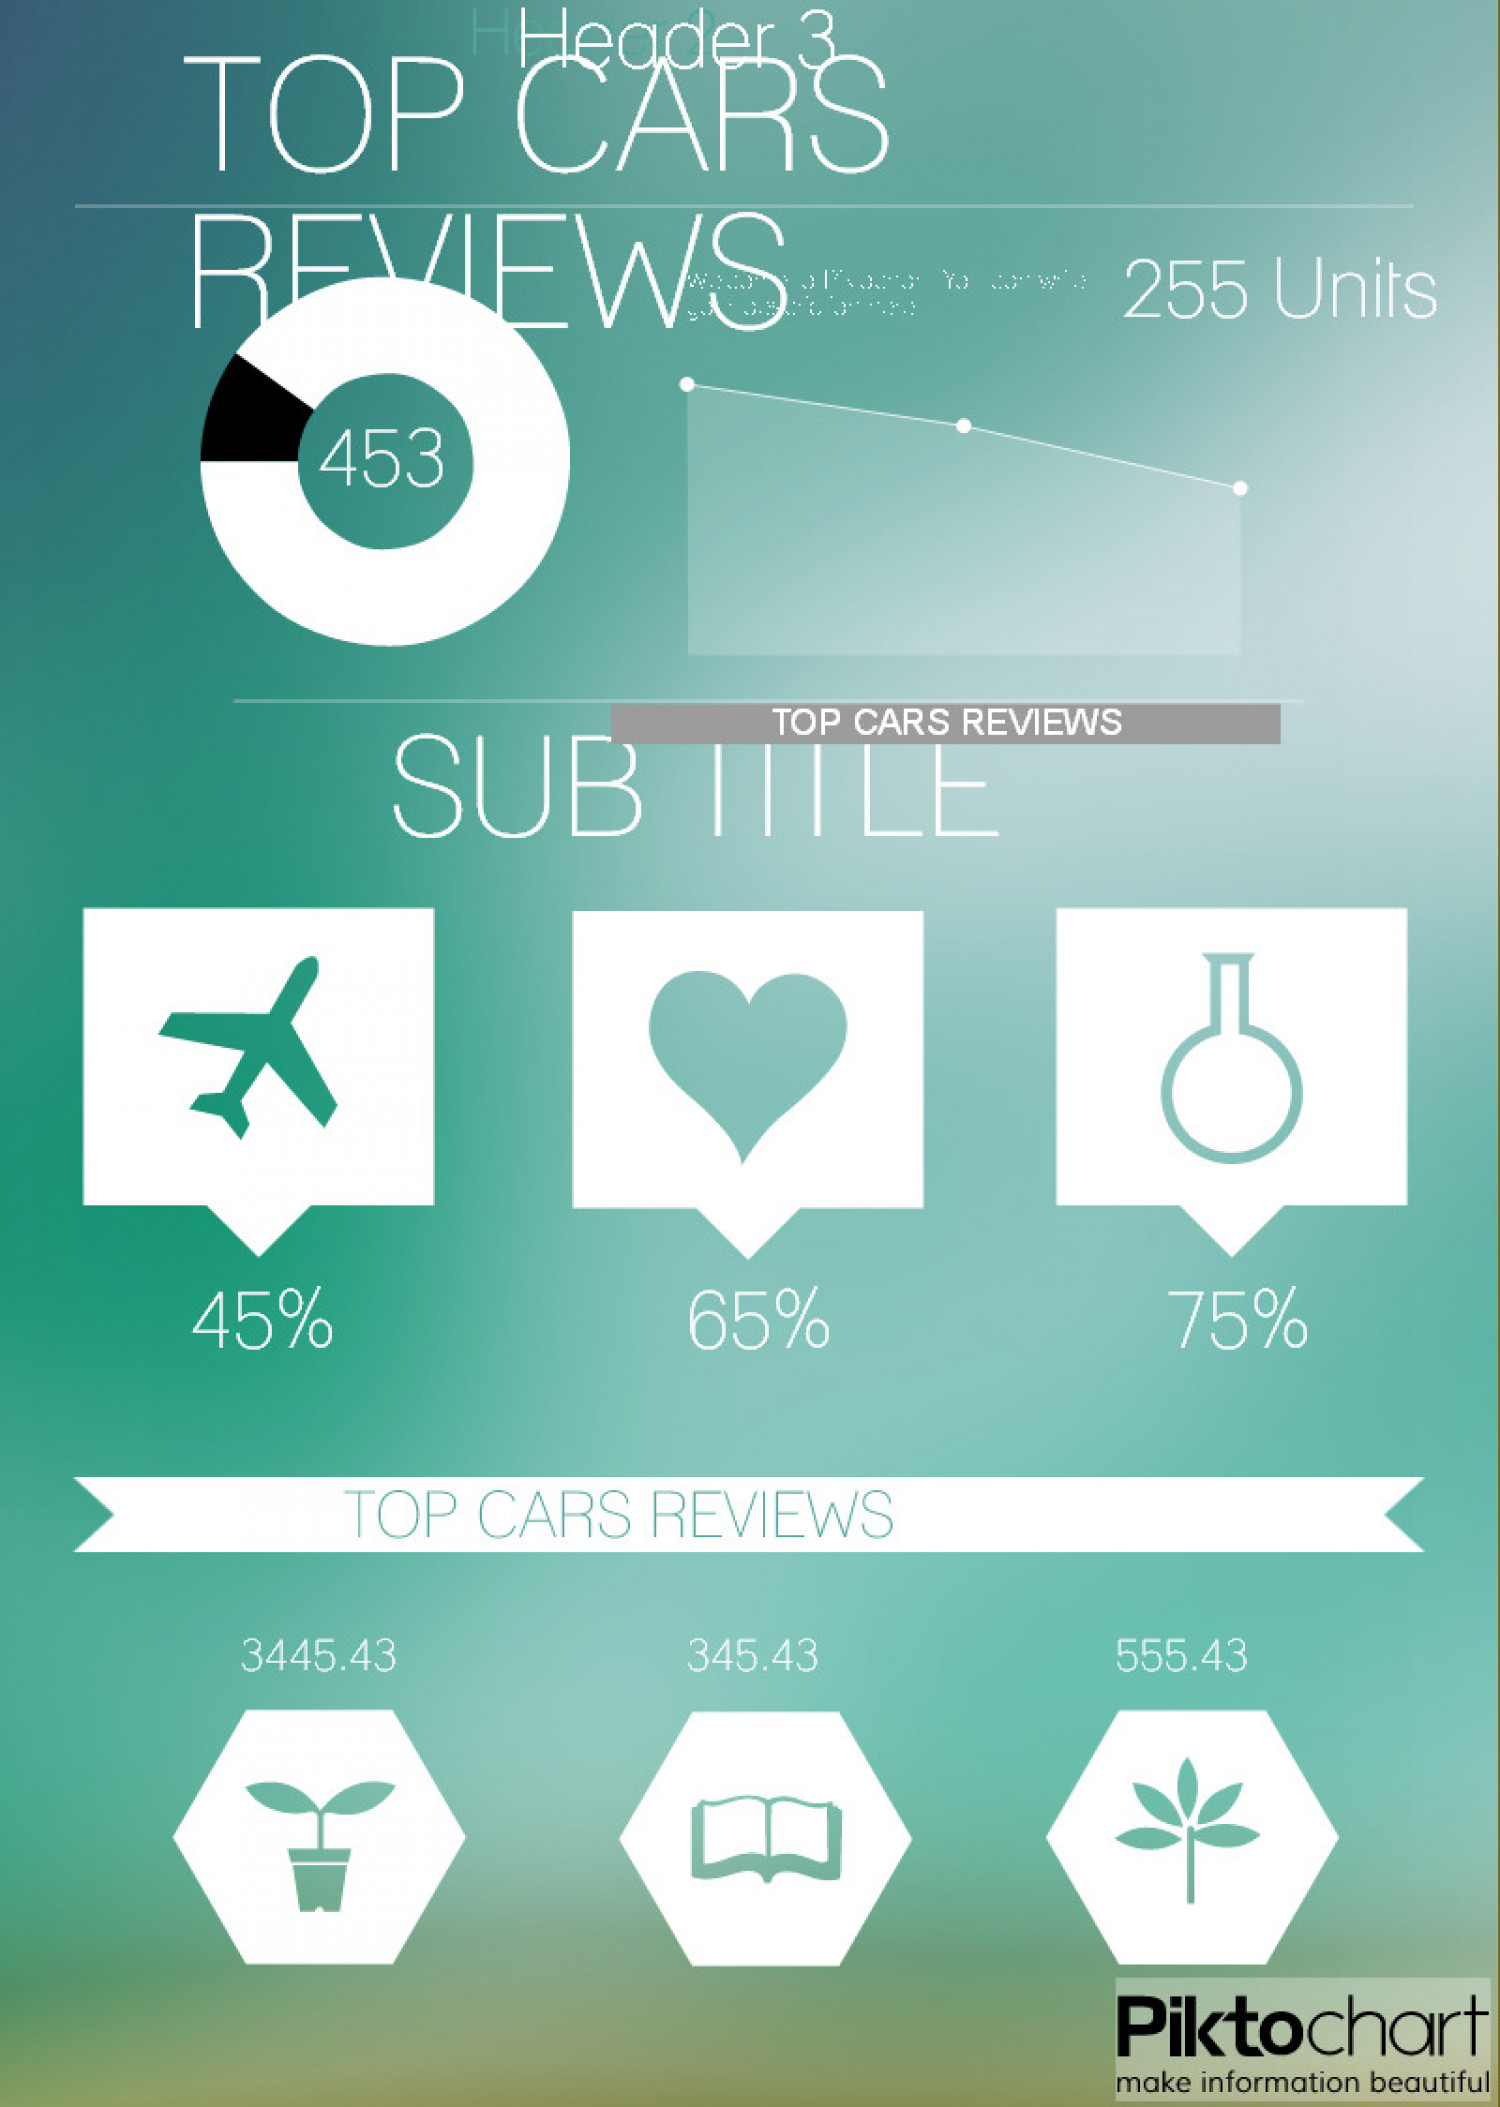 Top Cars Reviews Site Infographic